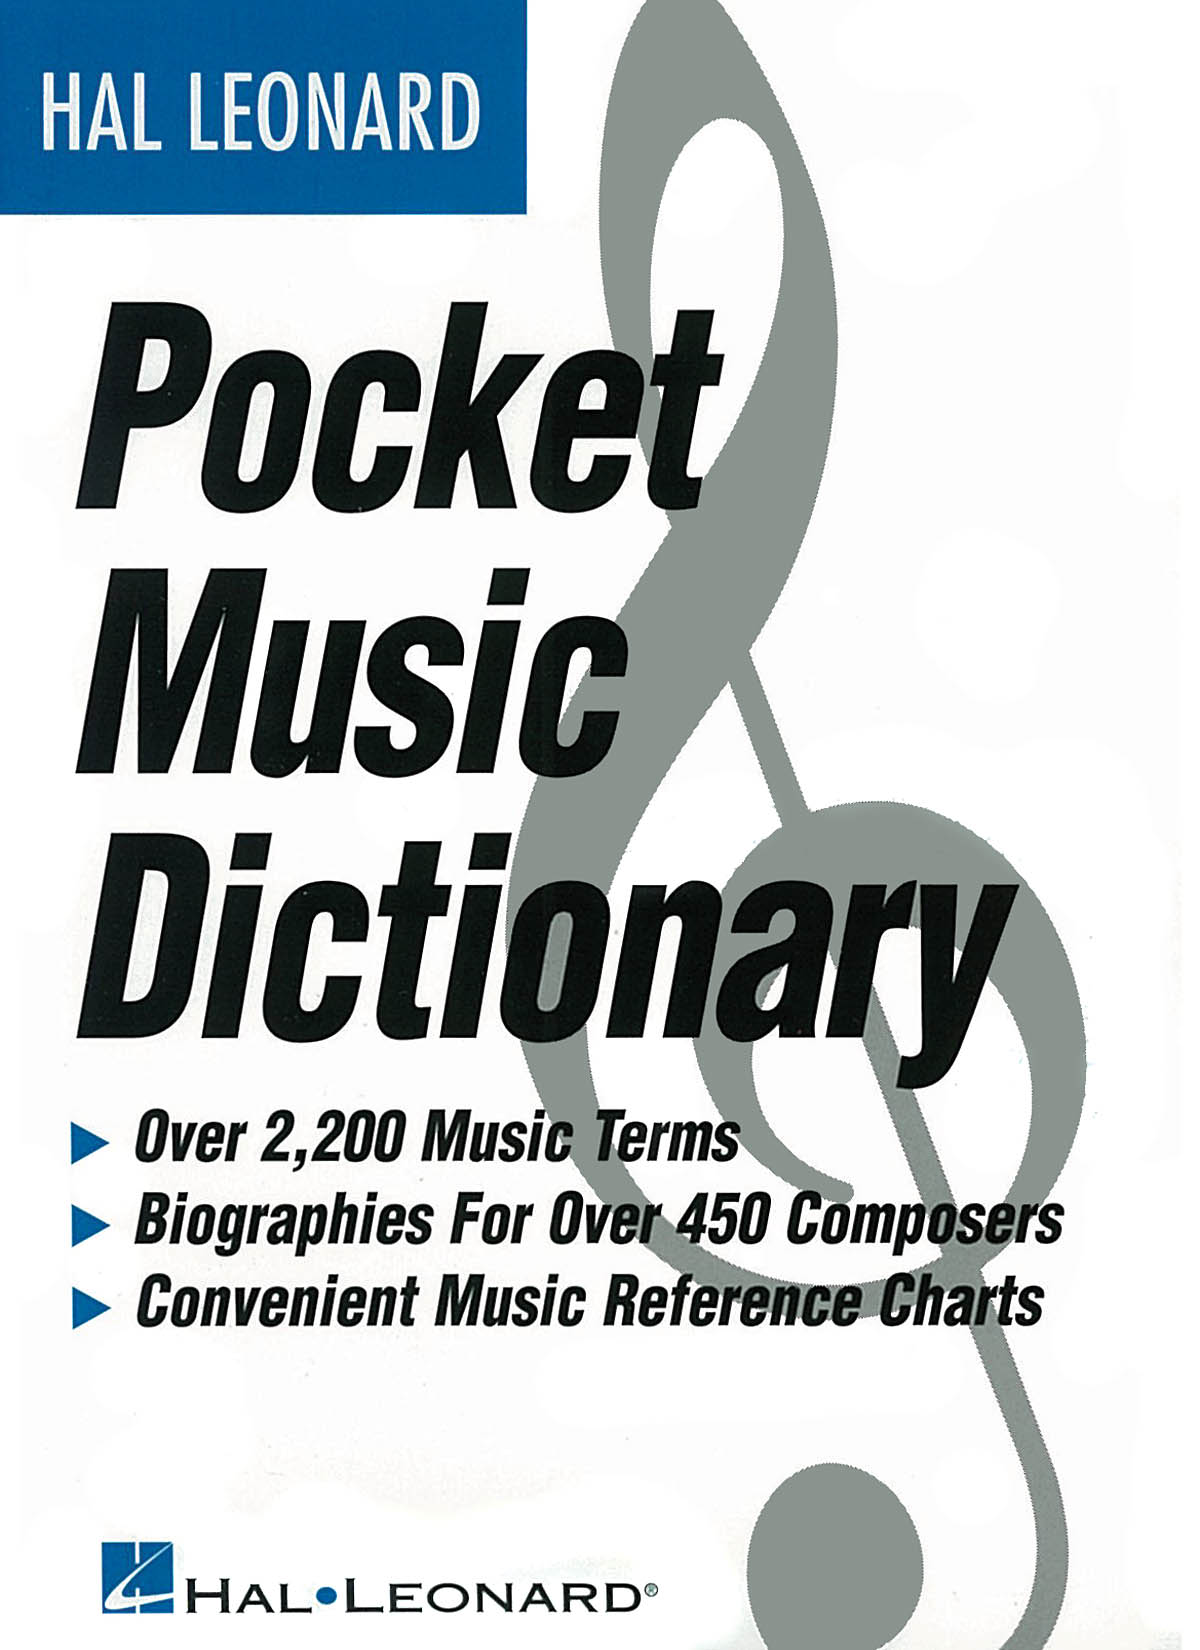 The Hal Leonard Pocket Music Dictionary: Reference Books: Reference